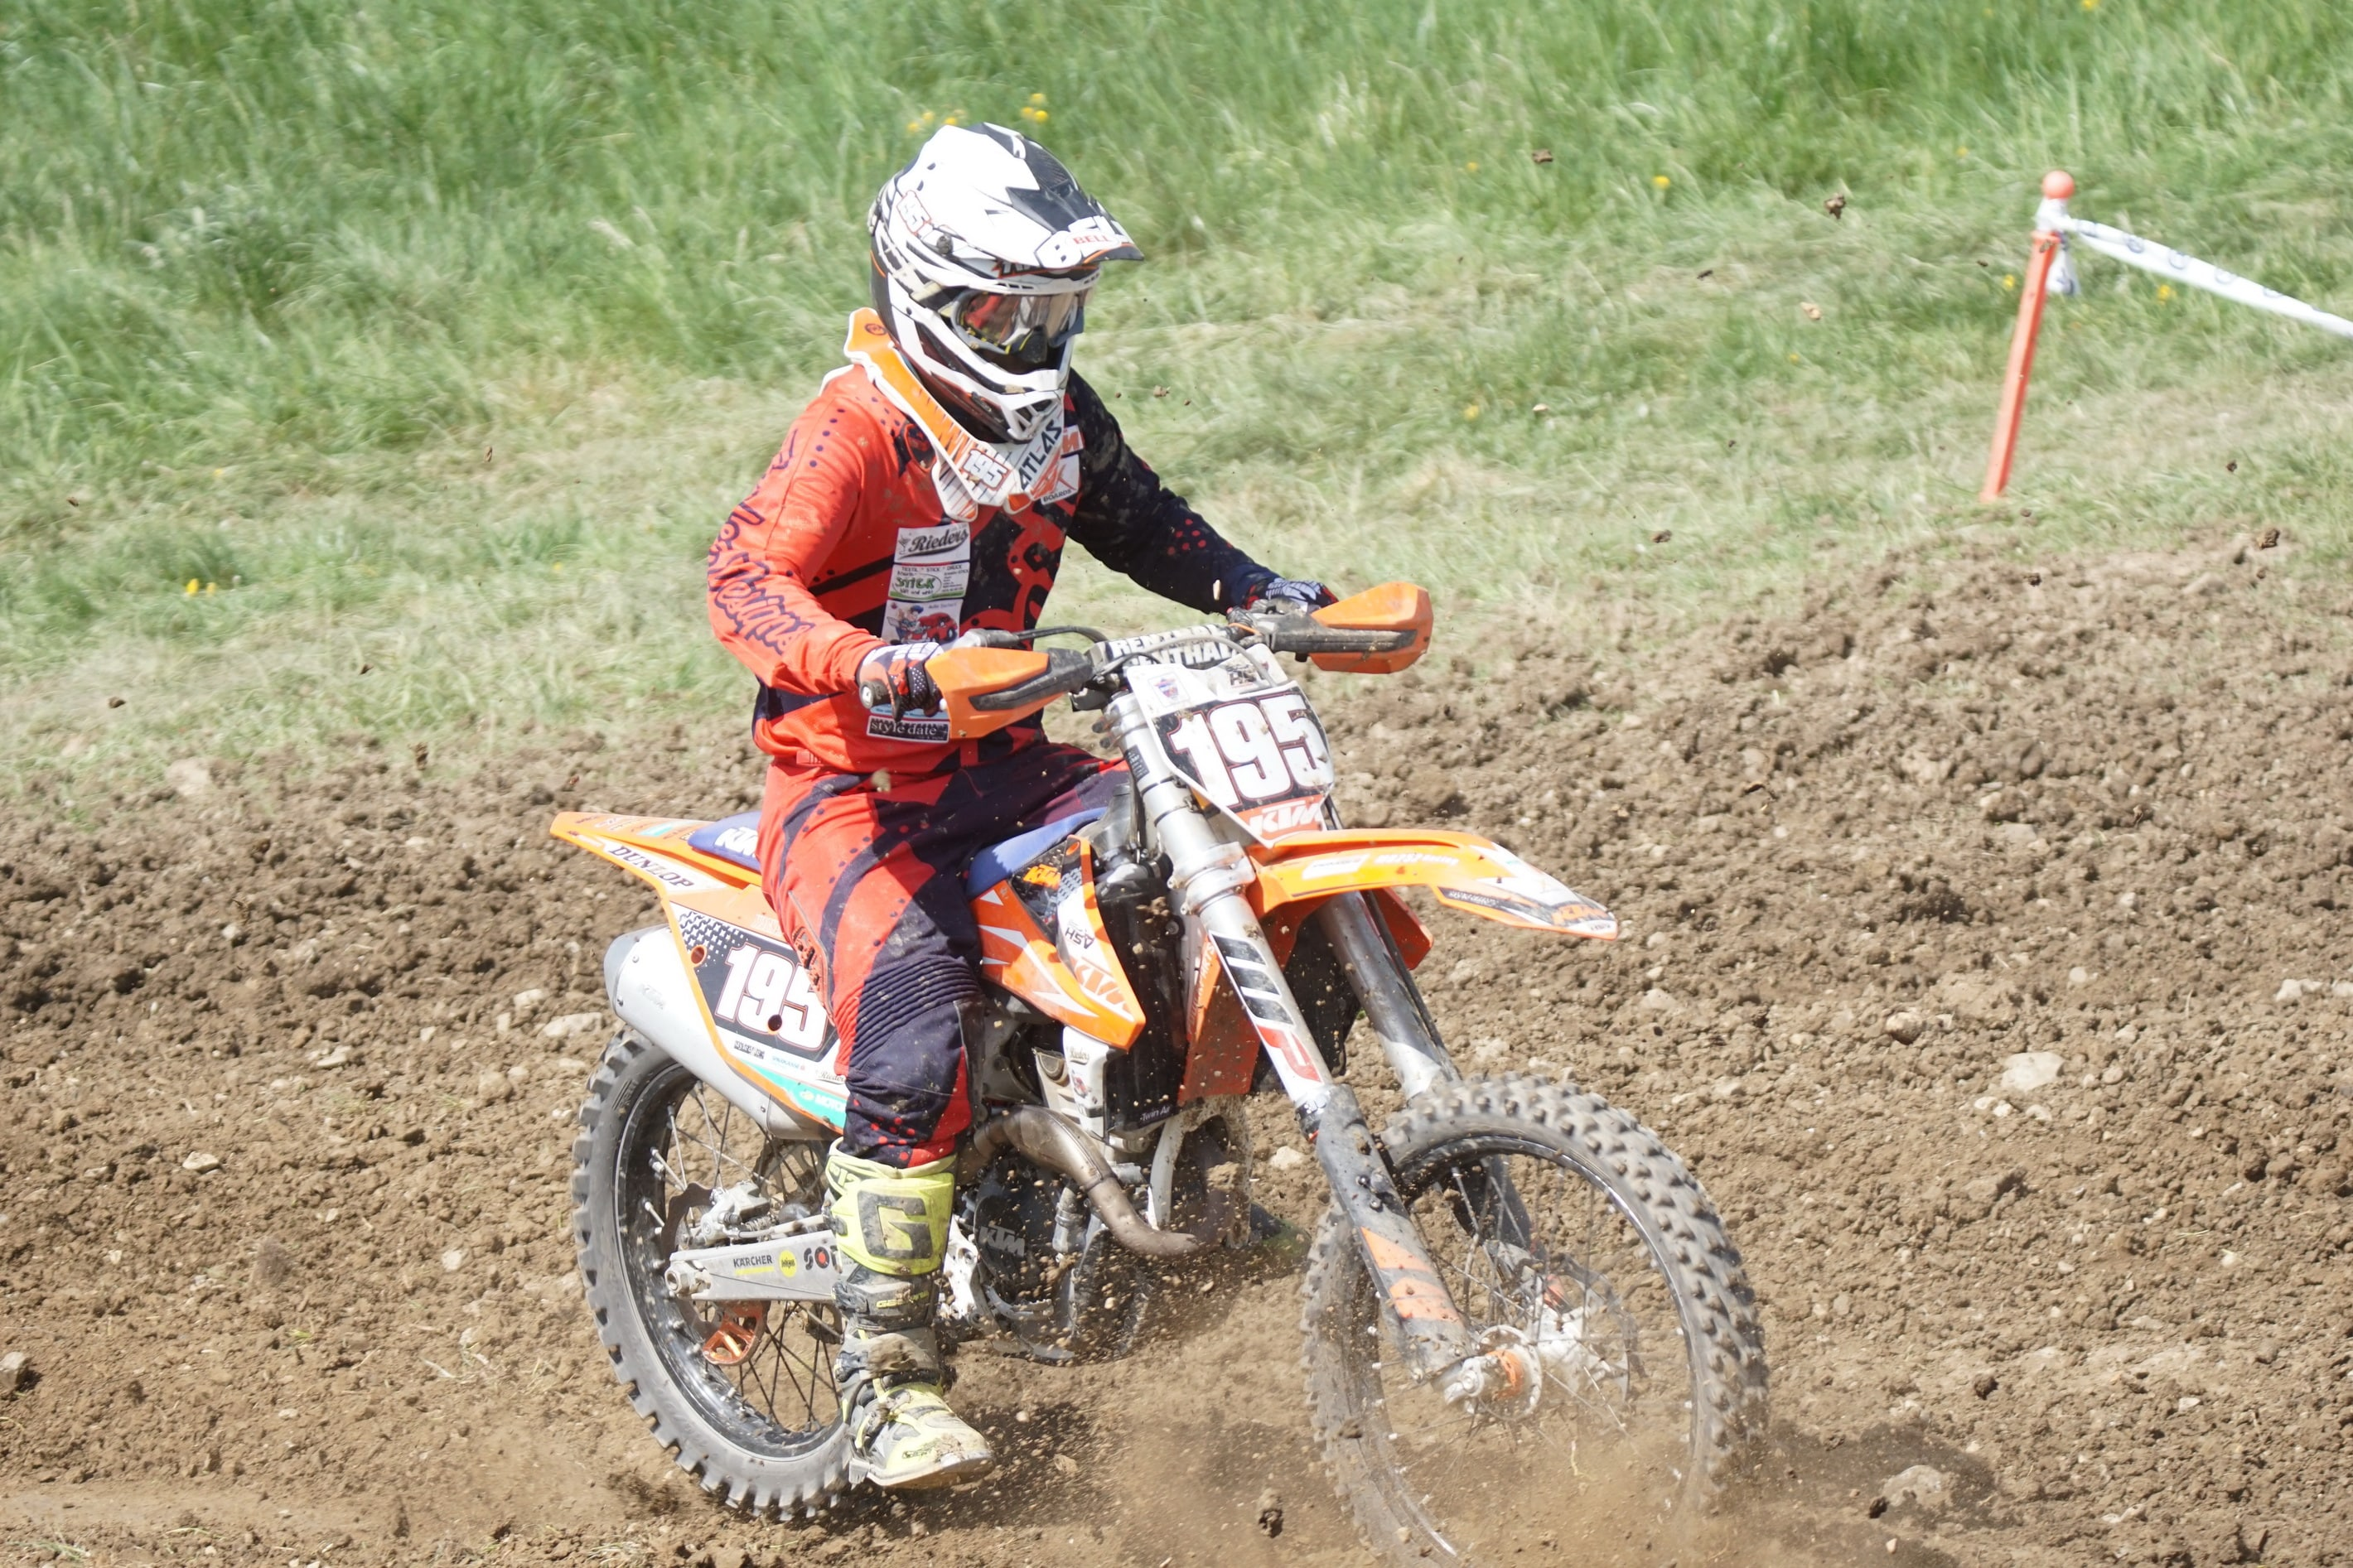 DSC 597_Moto Cross Sittendorf Teil1 am 29.04.2018